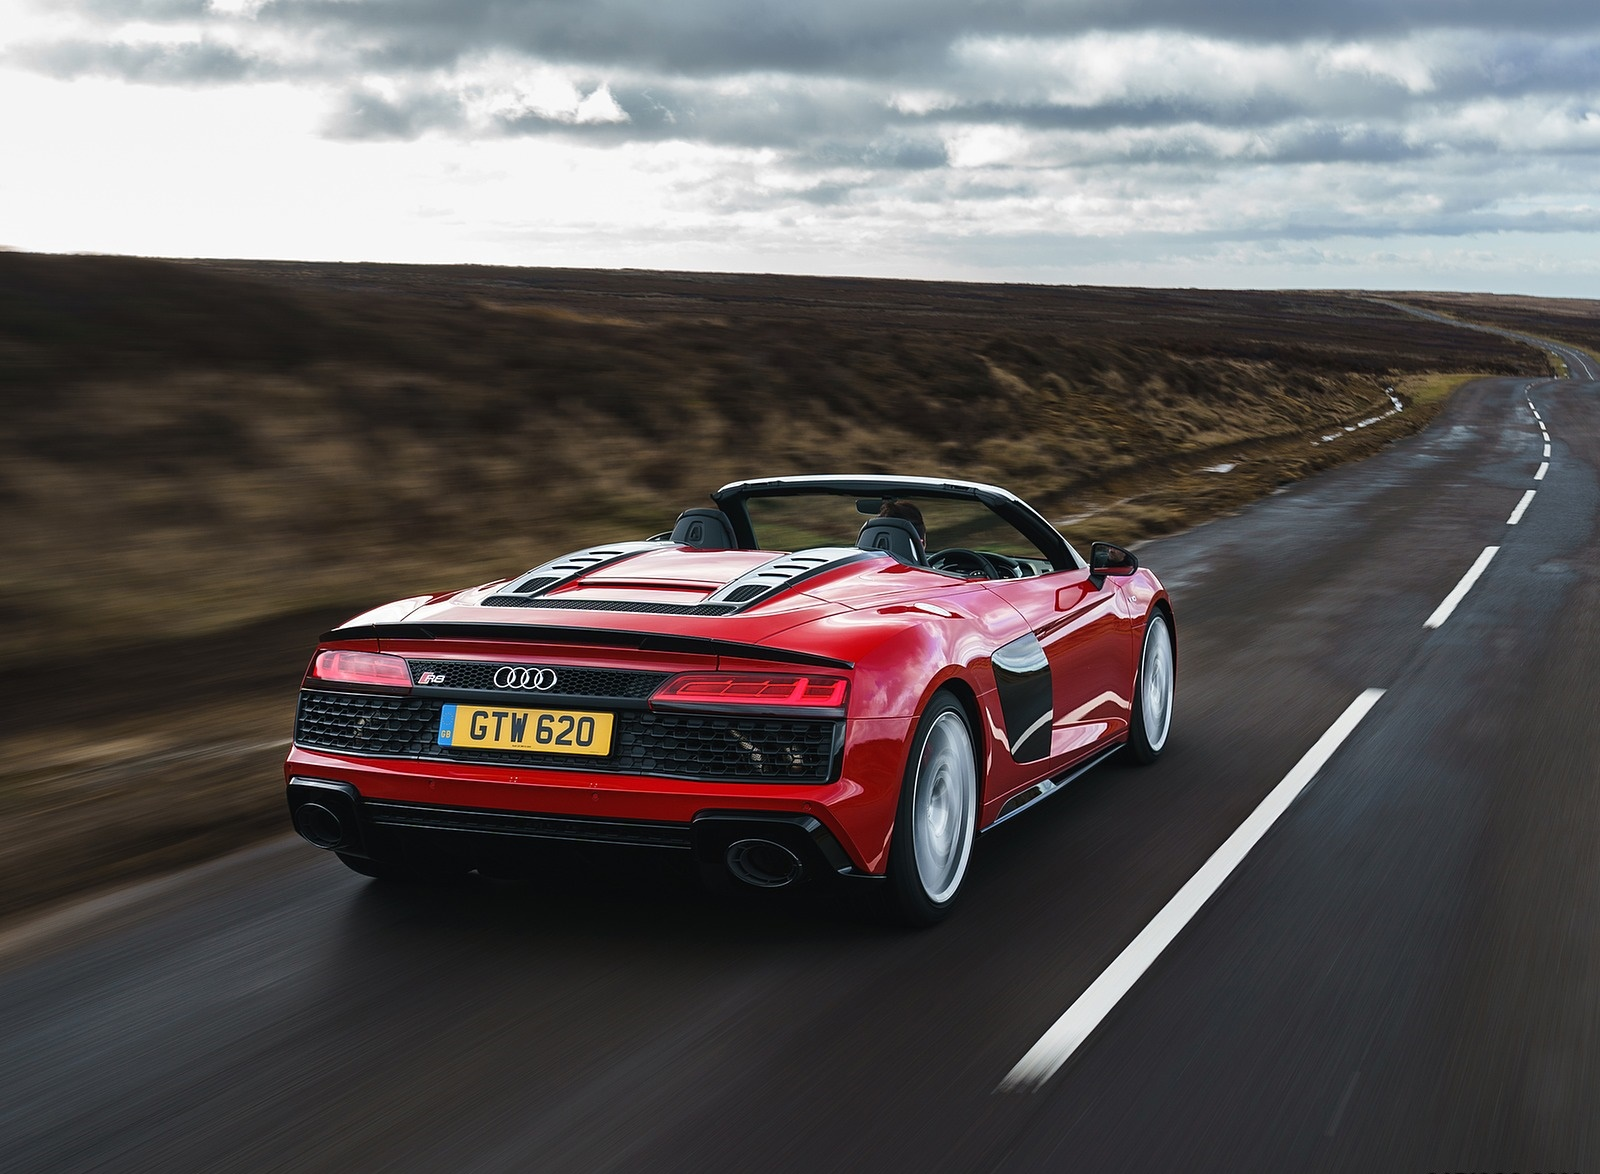 2019 Audi R8 V10 Spyder Performance quattro (UK-Spec) Rear Three-Quarter Wallpapers (10)